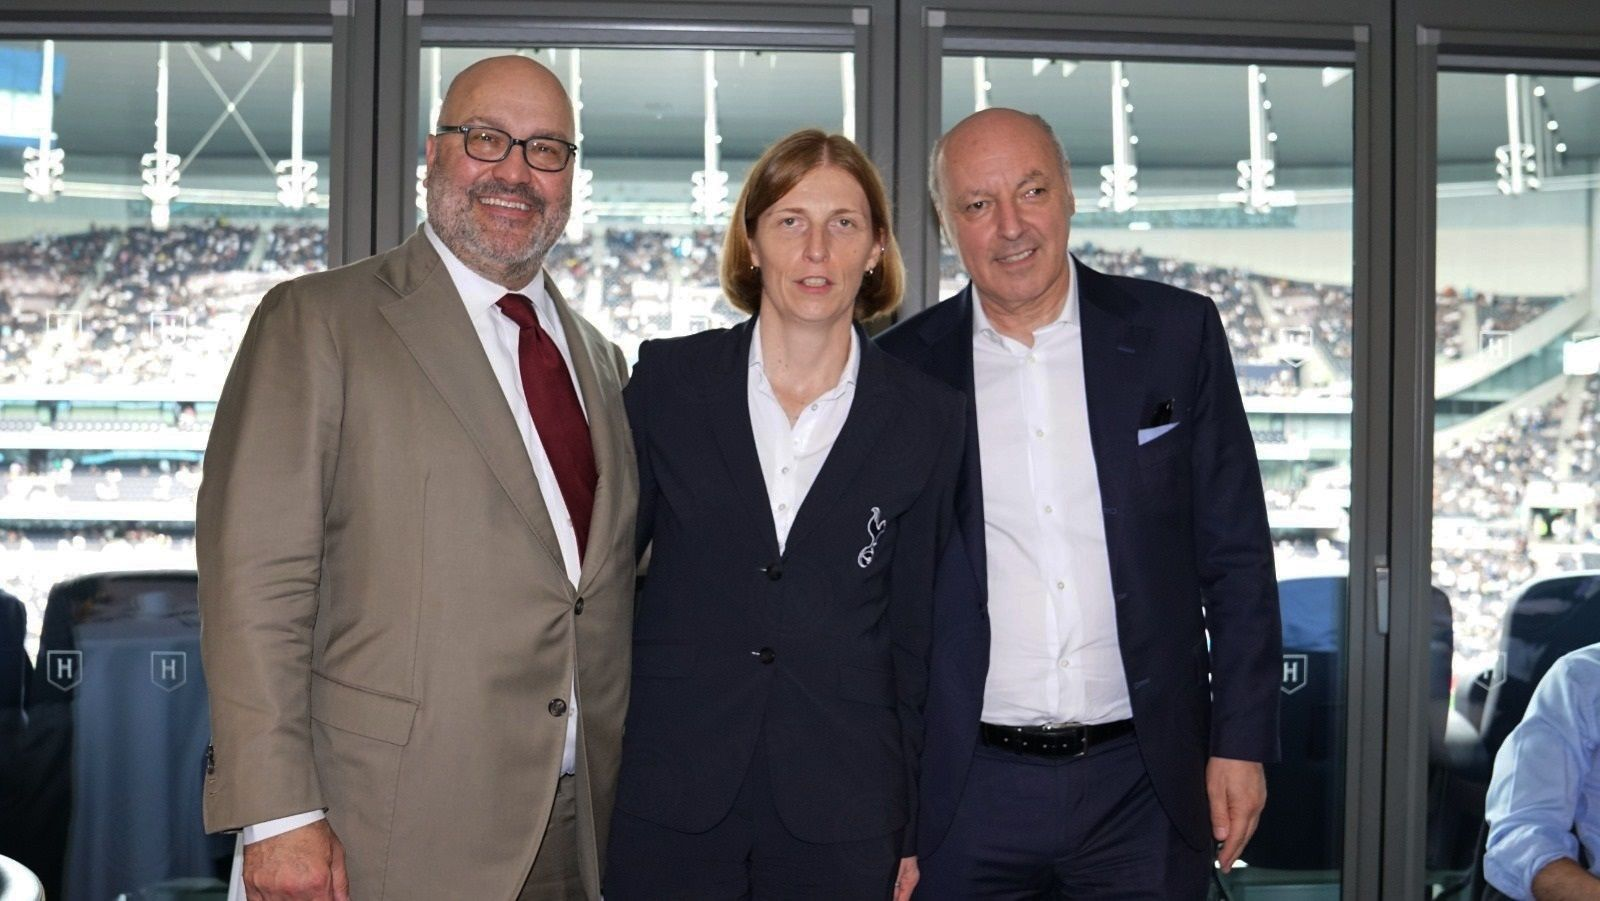 ICC 2019: Inter, Tottenham and Relevent Sports Group together in London